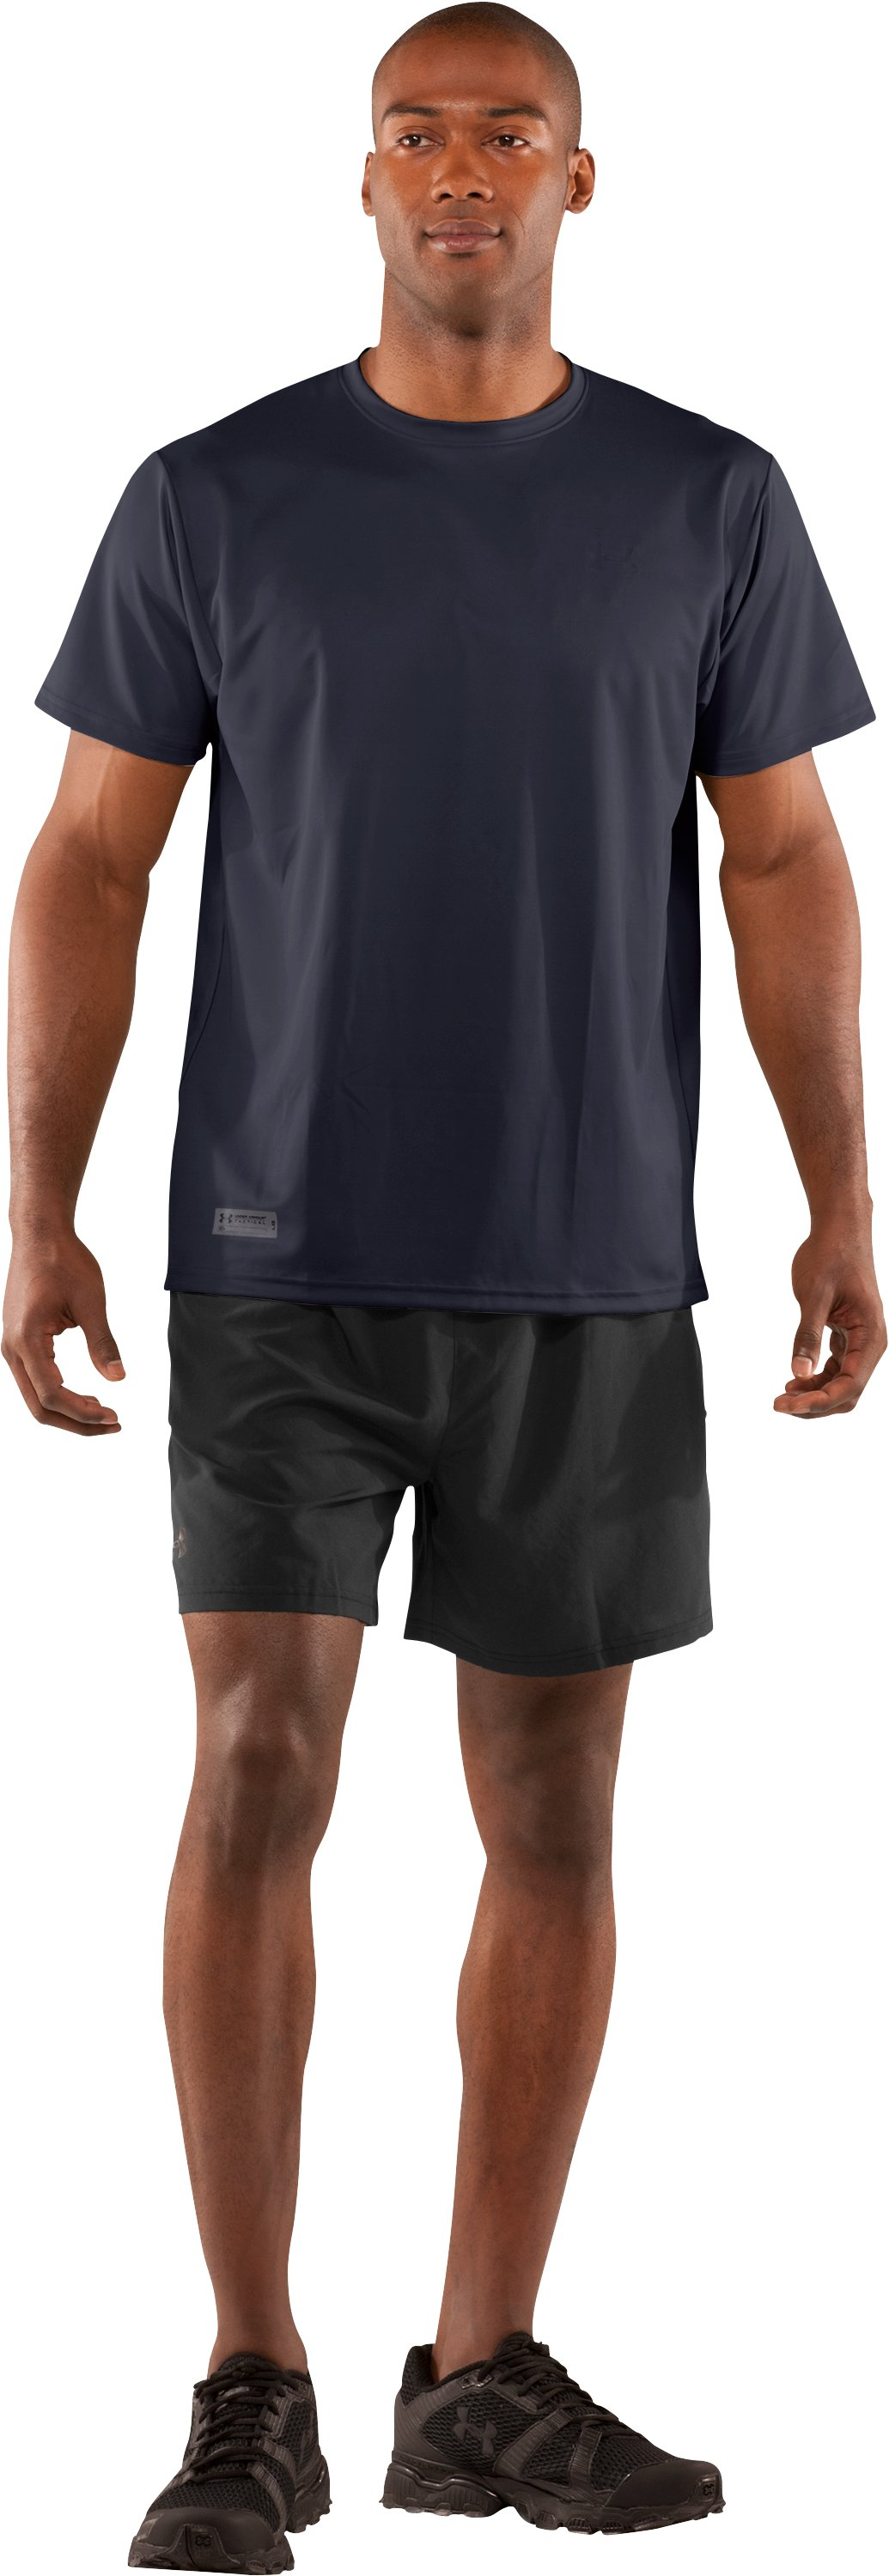 Men's UA HeatGear® Tactical Short Sleeve T-Shirt, Dark Navy Blue